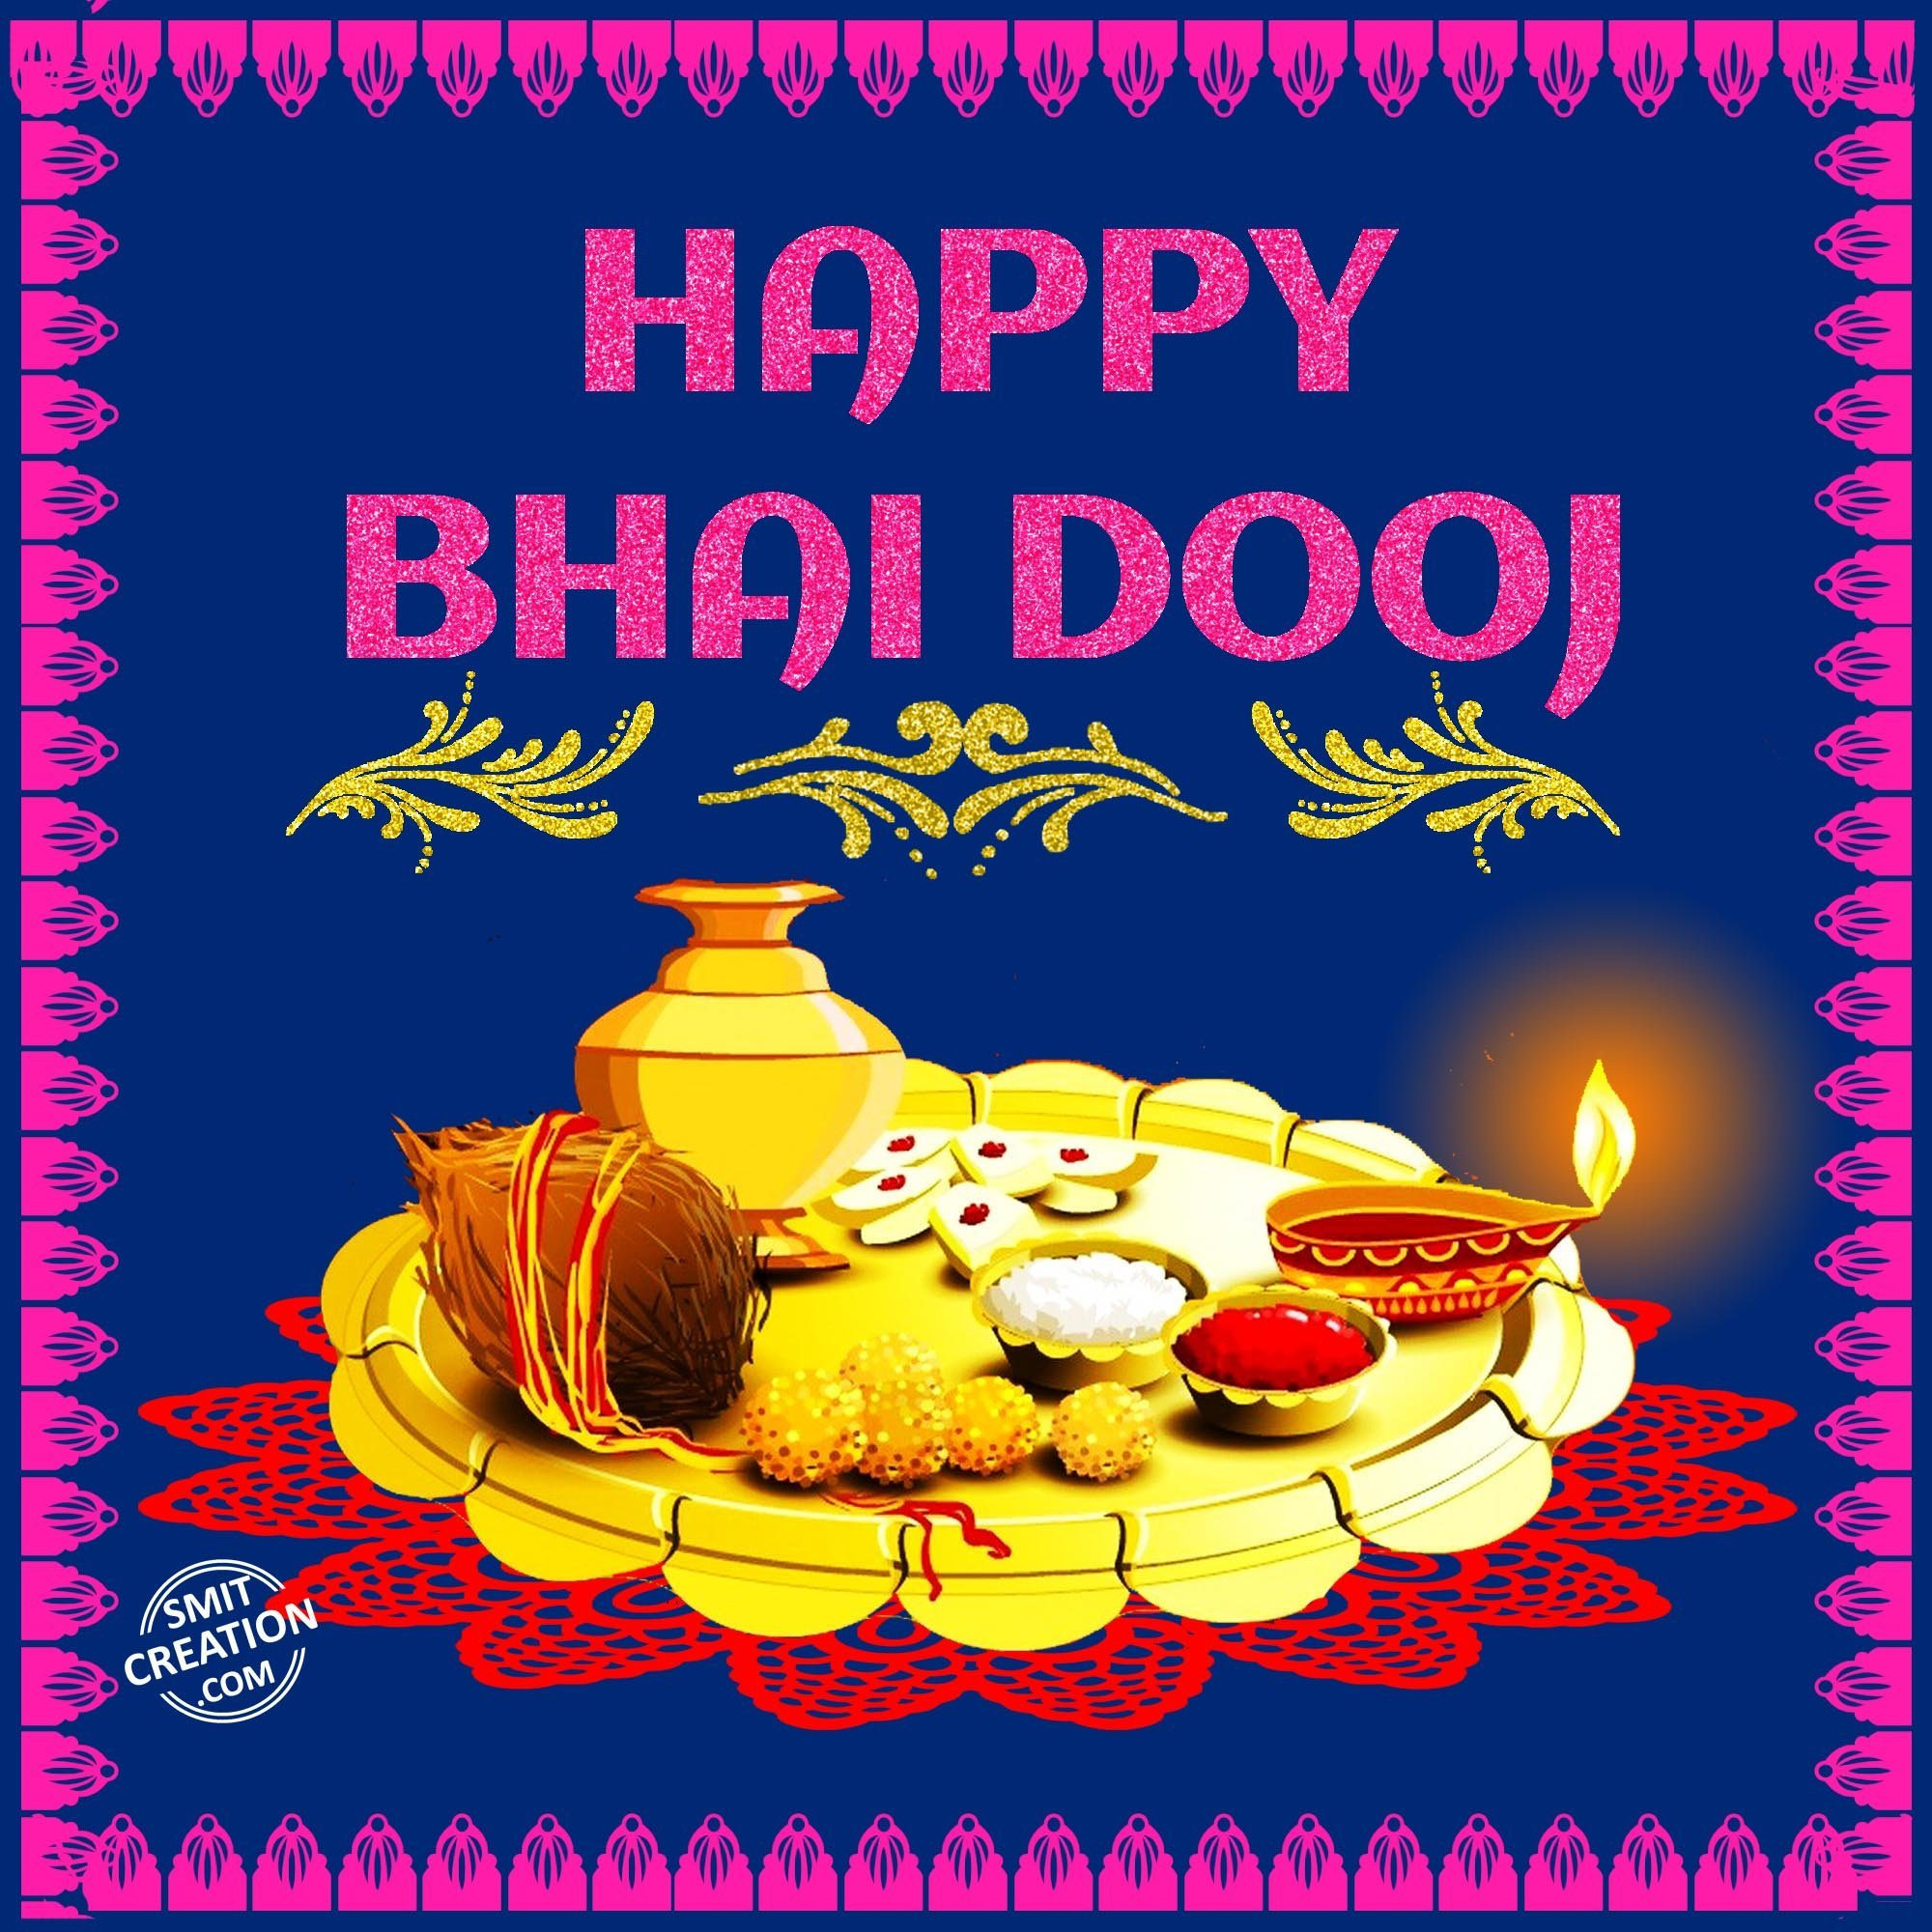 Bhai dooj pictures and graphics smitcreation page 2 download image kristyandbryce Images